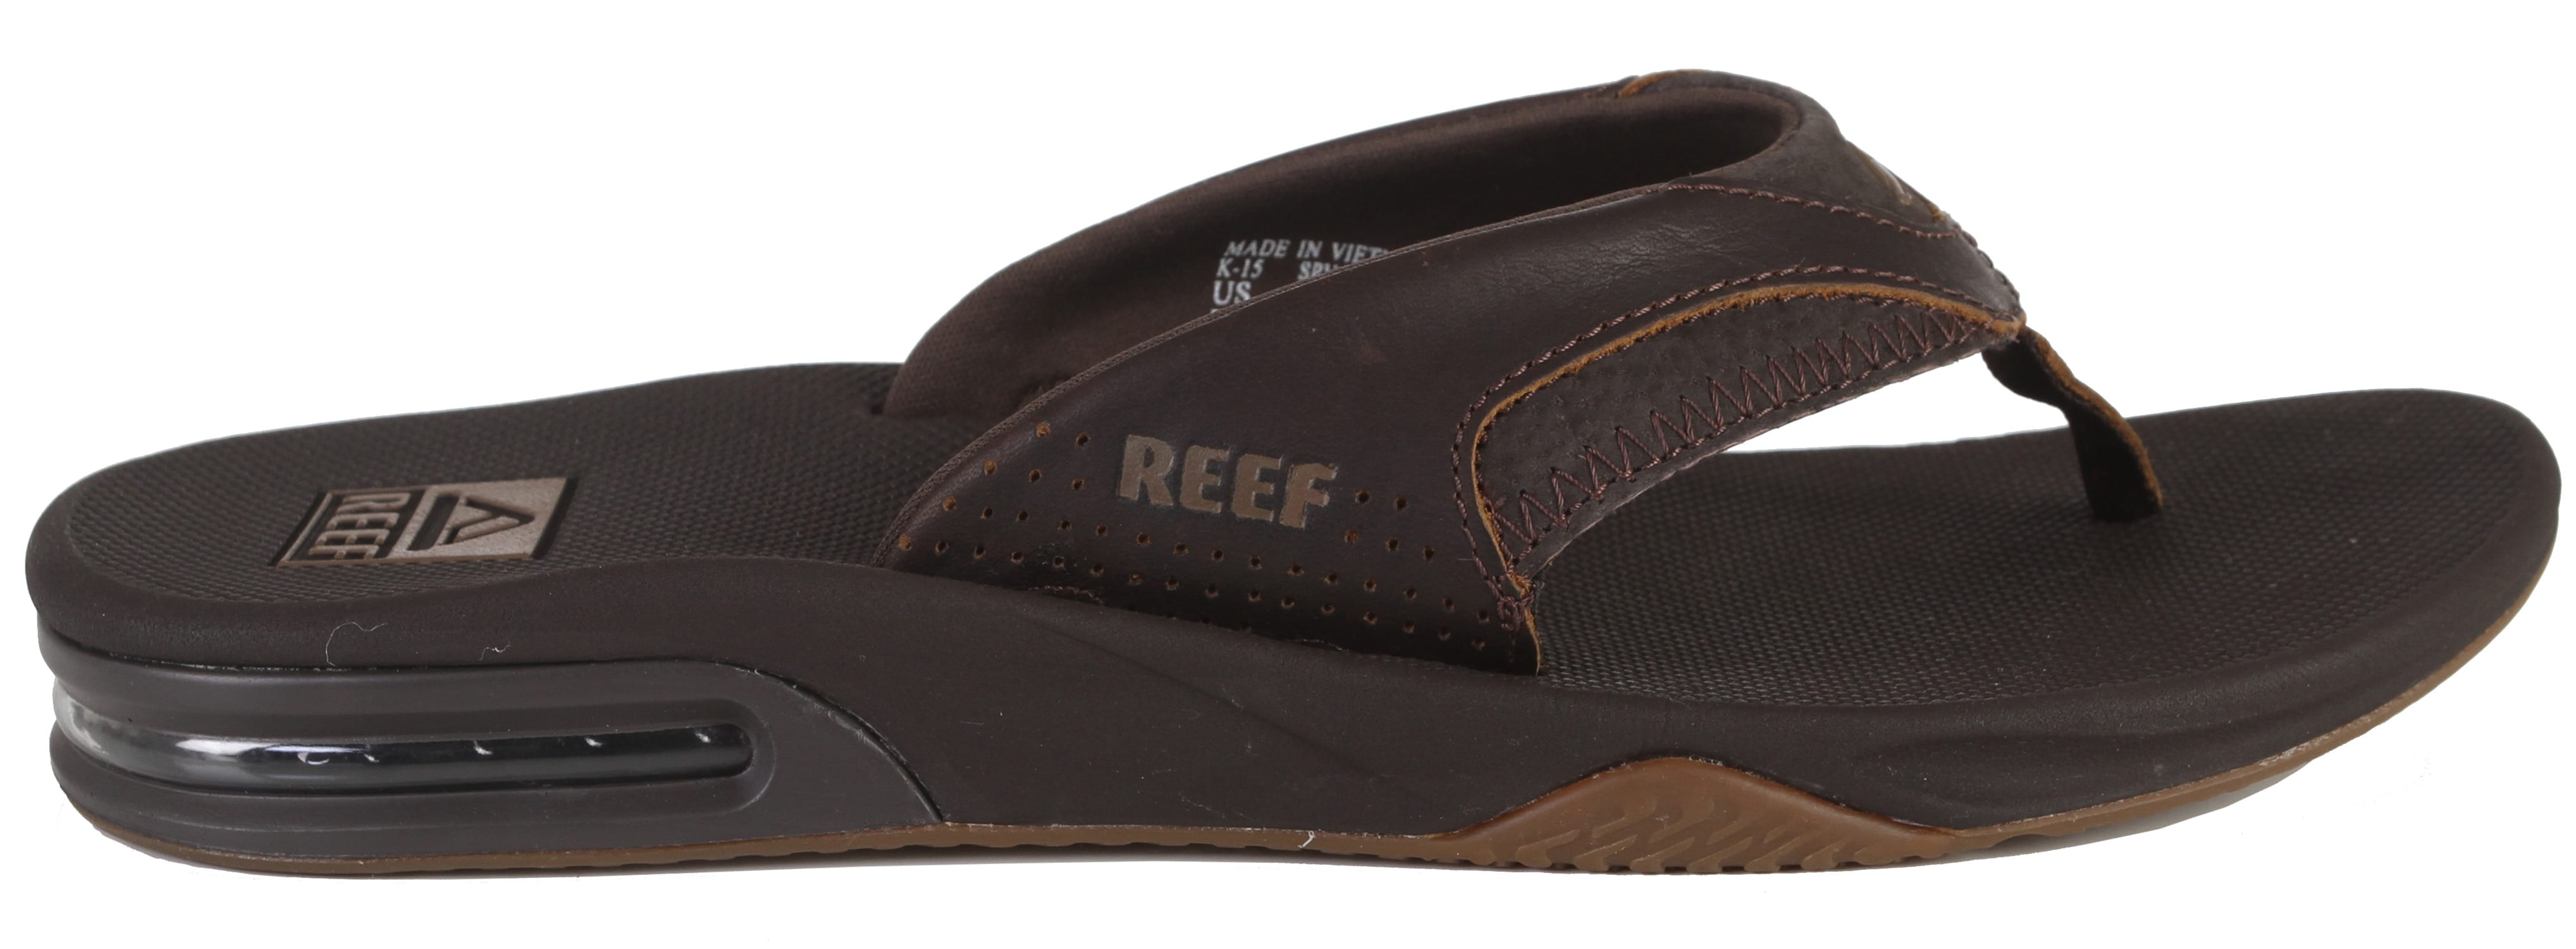 Reef Leather Shoes